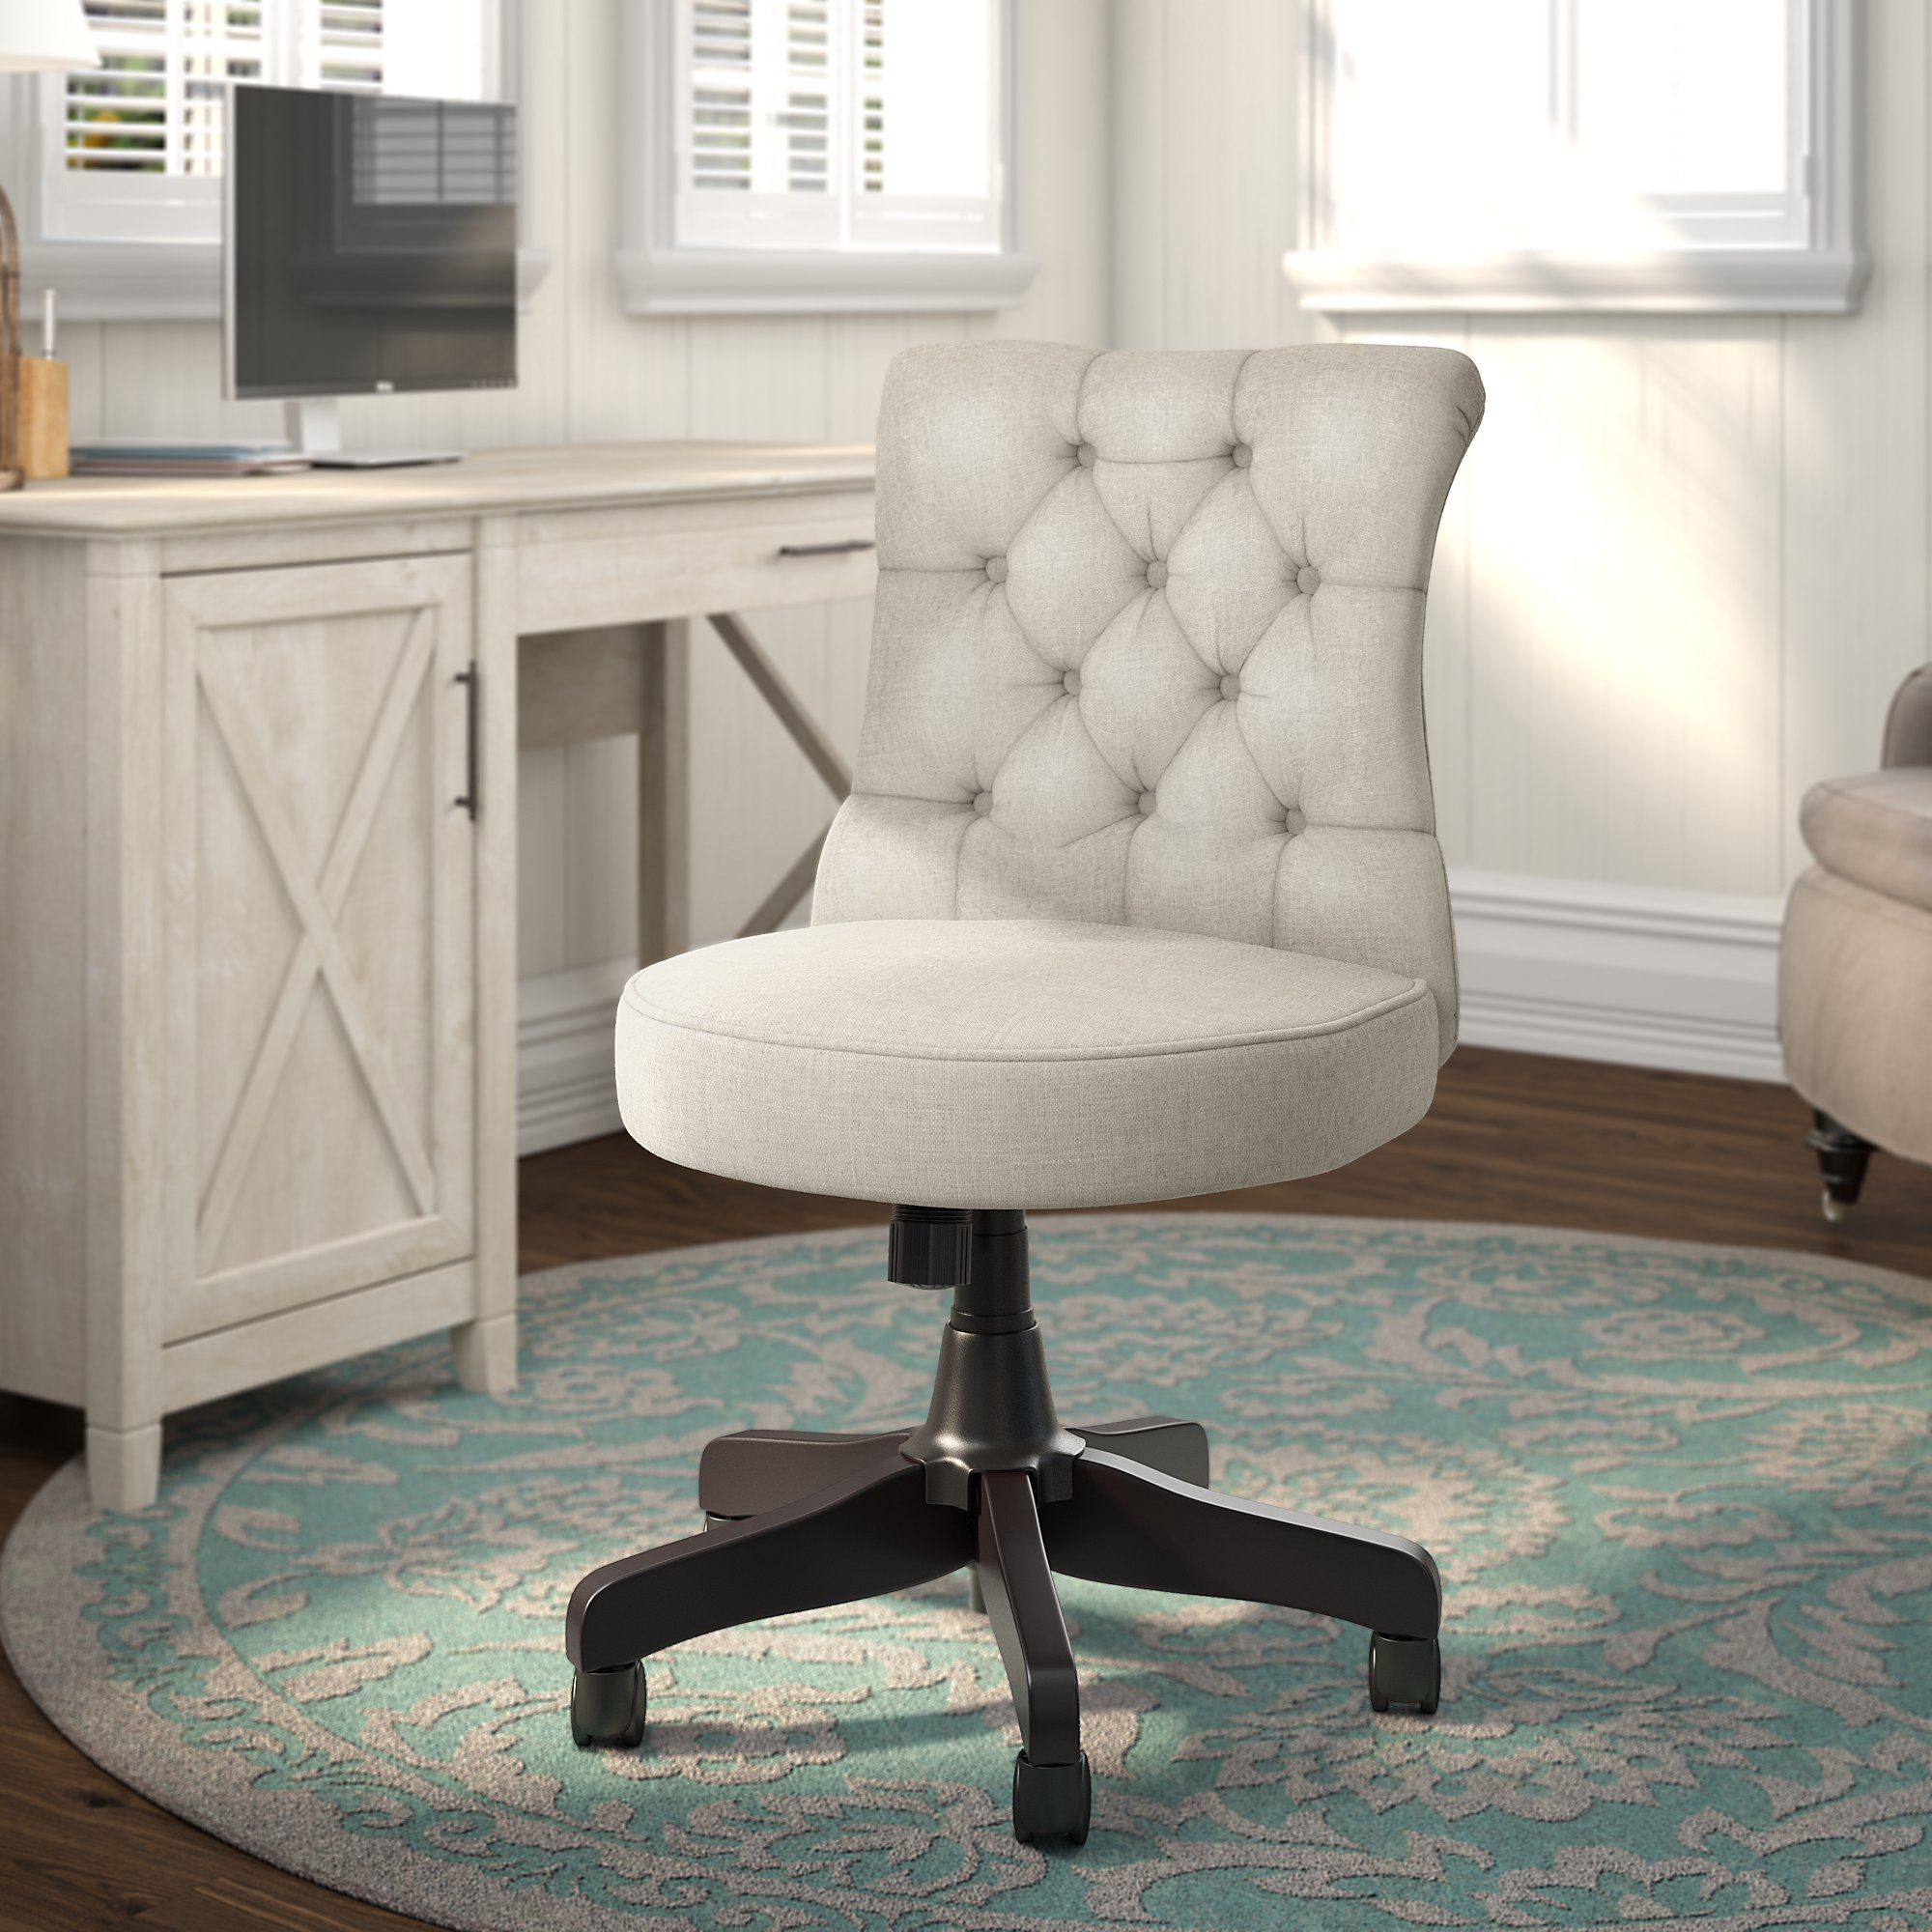 Surprising Bush Business Furniture Arden Lane Mid Back Tufted Office Chair Gmtry Best Dining Table And Chair Ideas Images Gmtryco